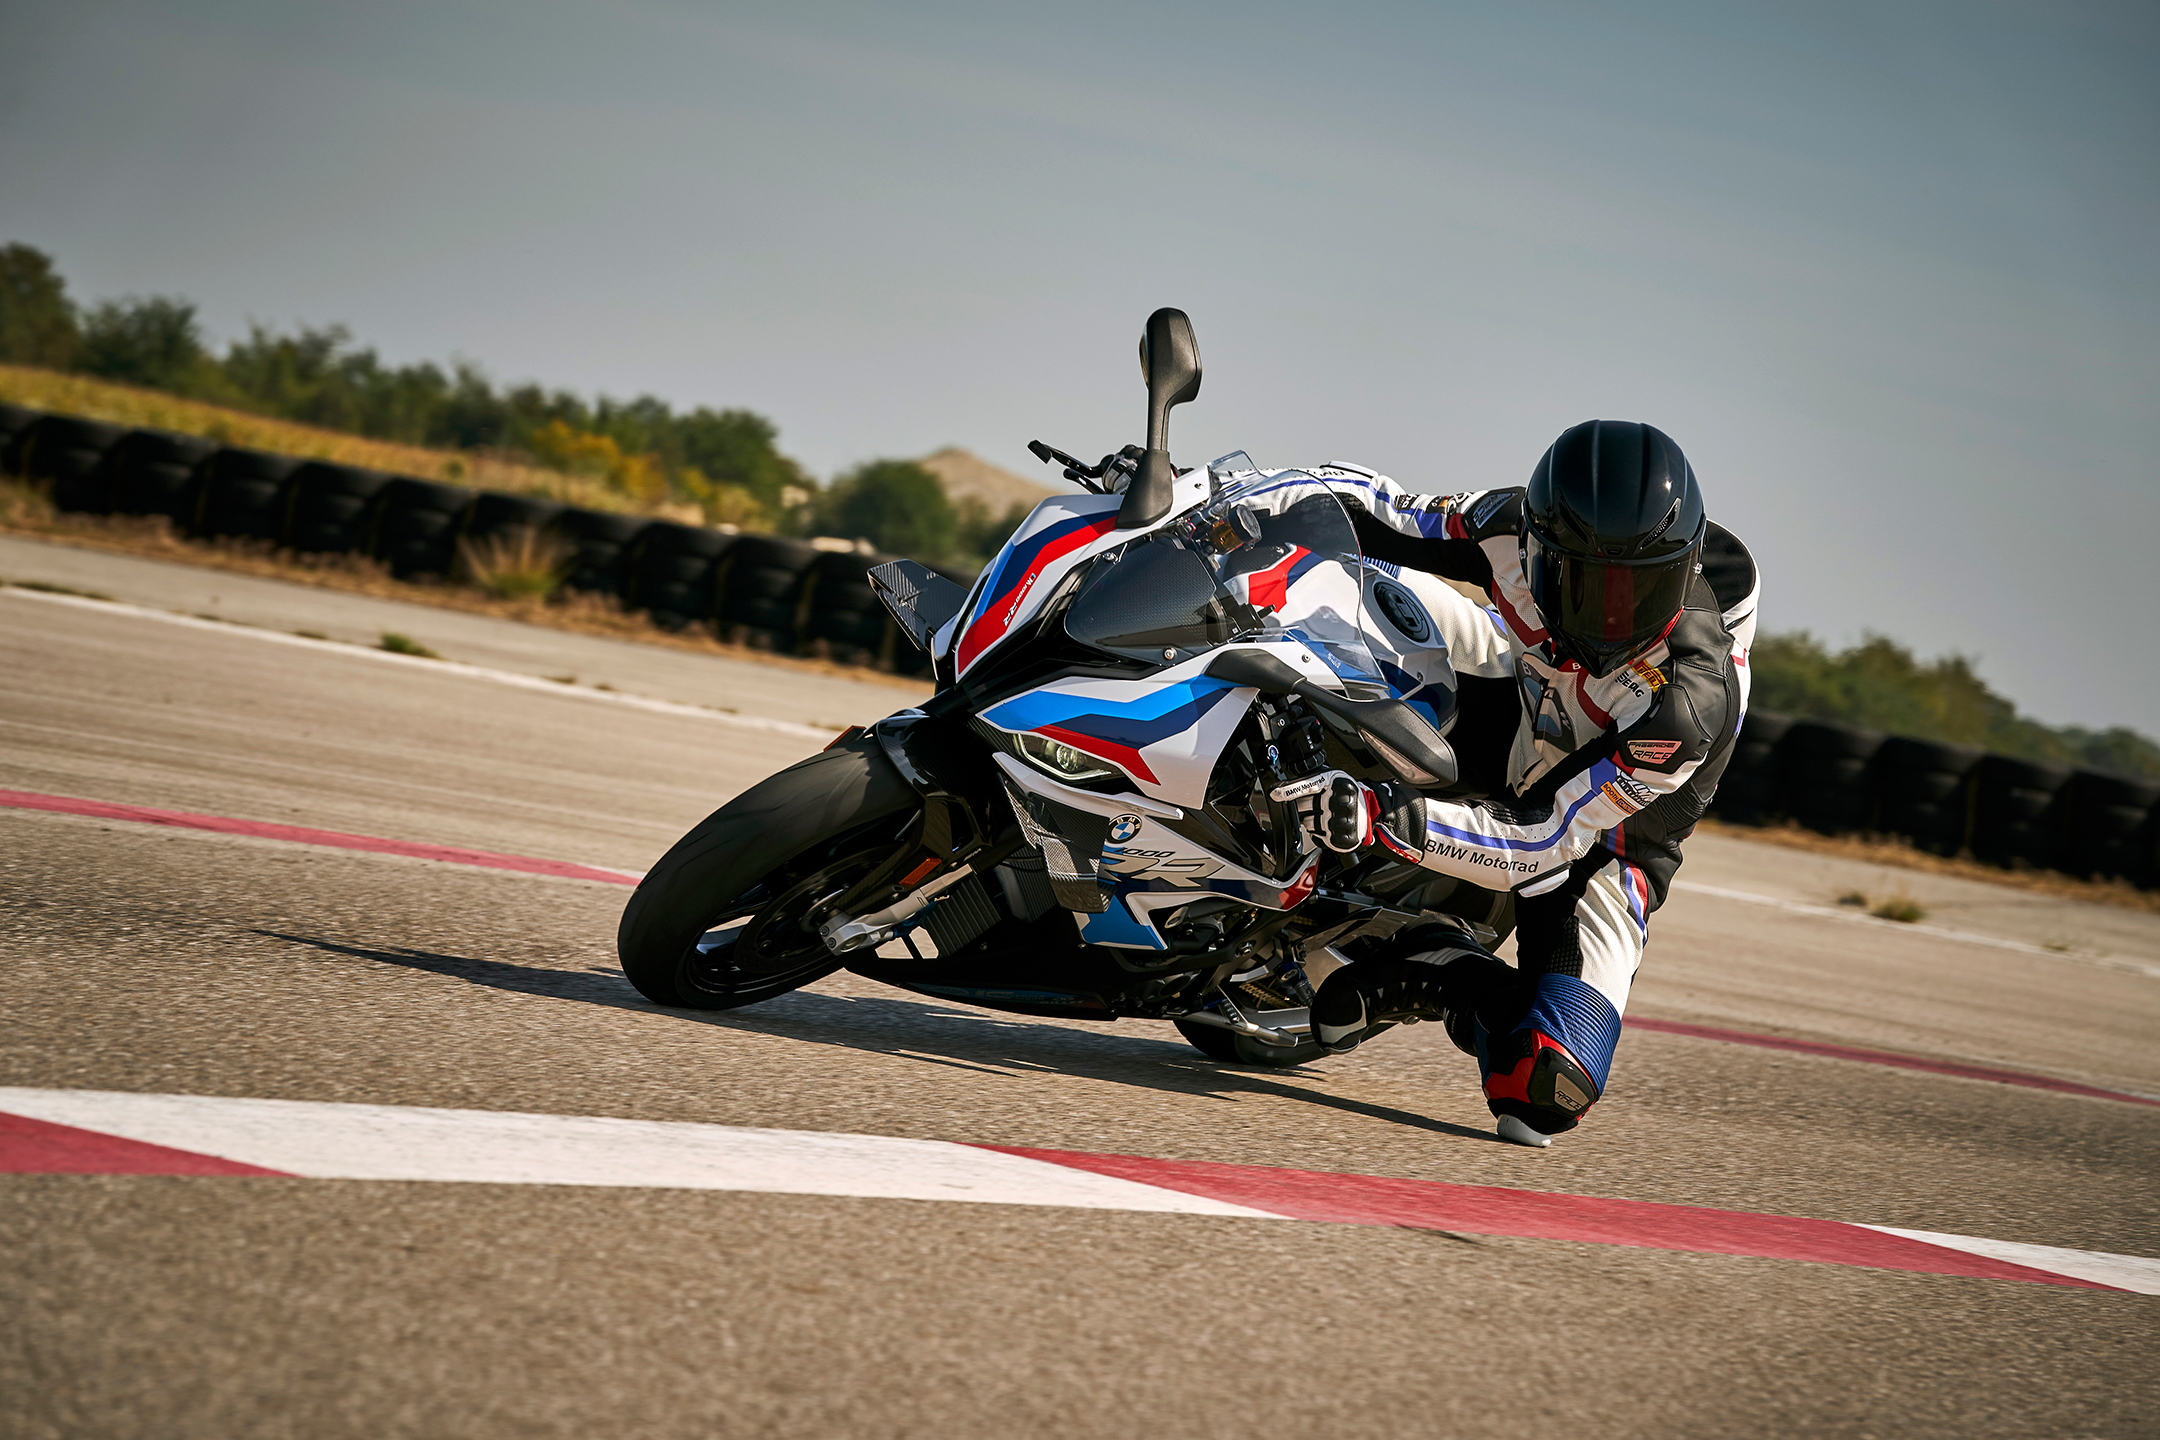 BMW M 1000 RR - 2020 - on track / sur circuit